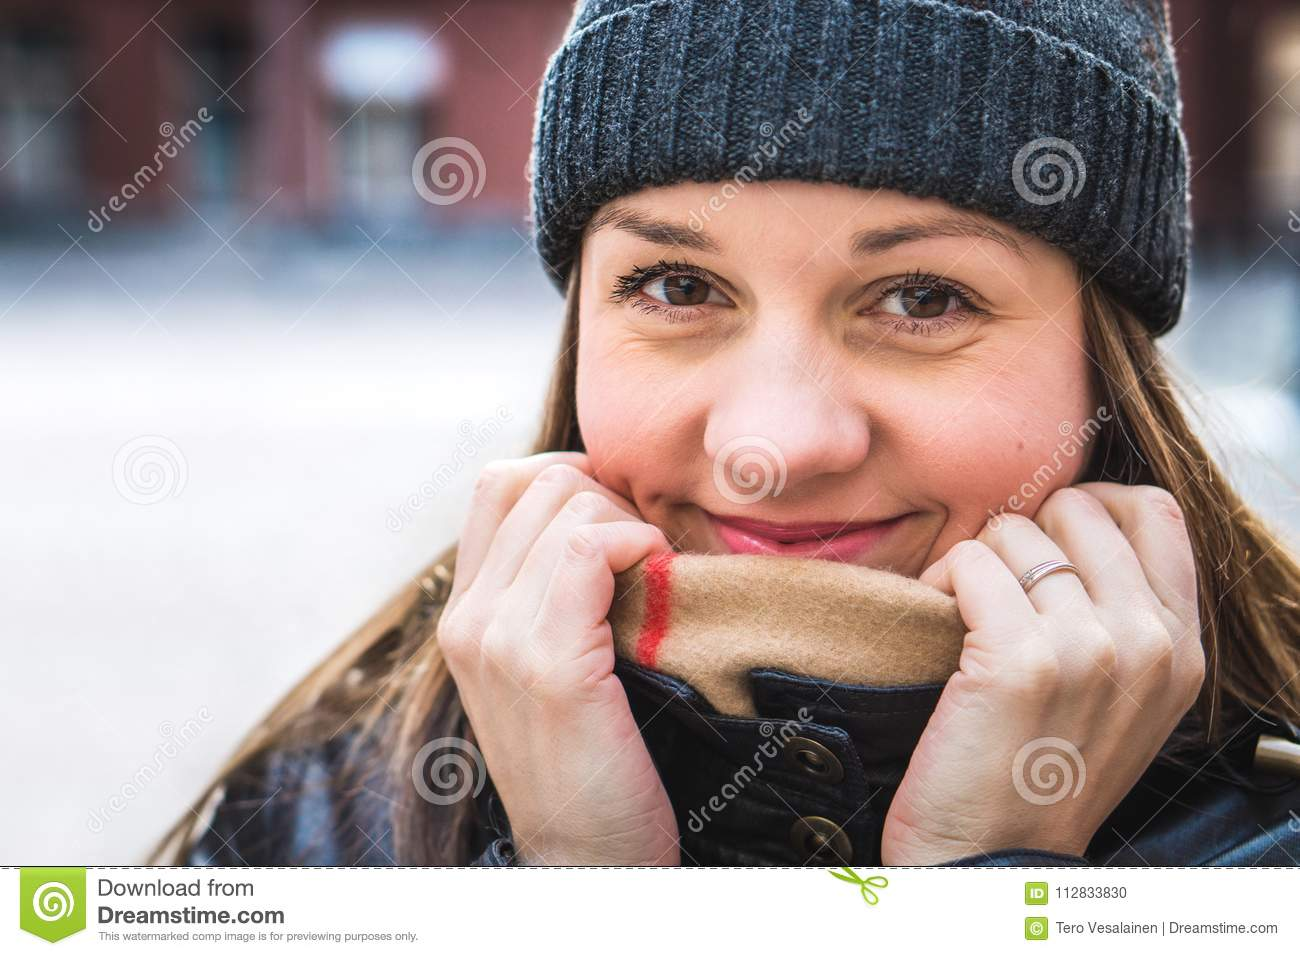 da2303d4ec059 Cute woman wearing a beanie in winter. Happy and smiling person hiding  behind scarf and holding collar with hands. Outdoor lifestyle portrait in  city. Ring ...